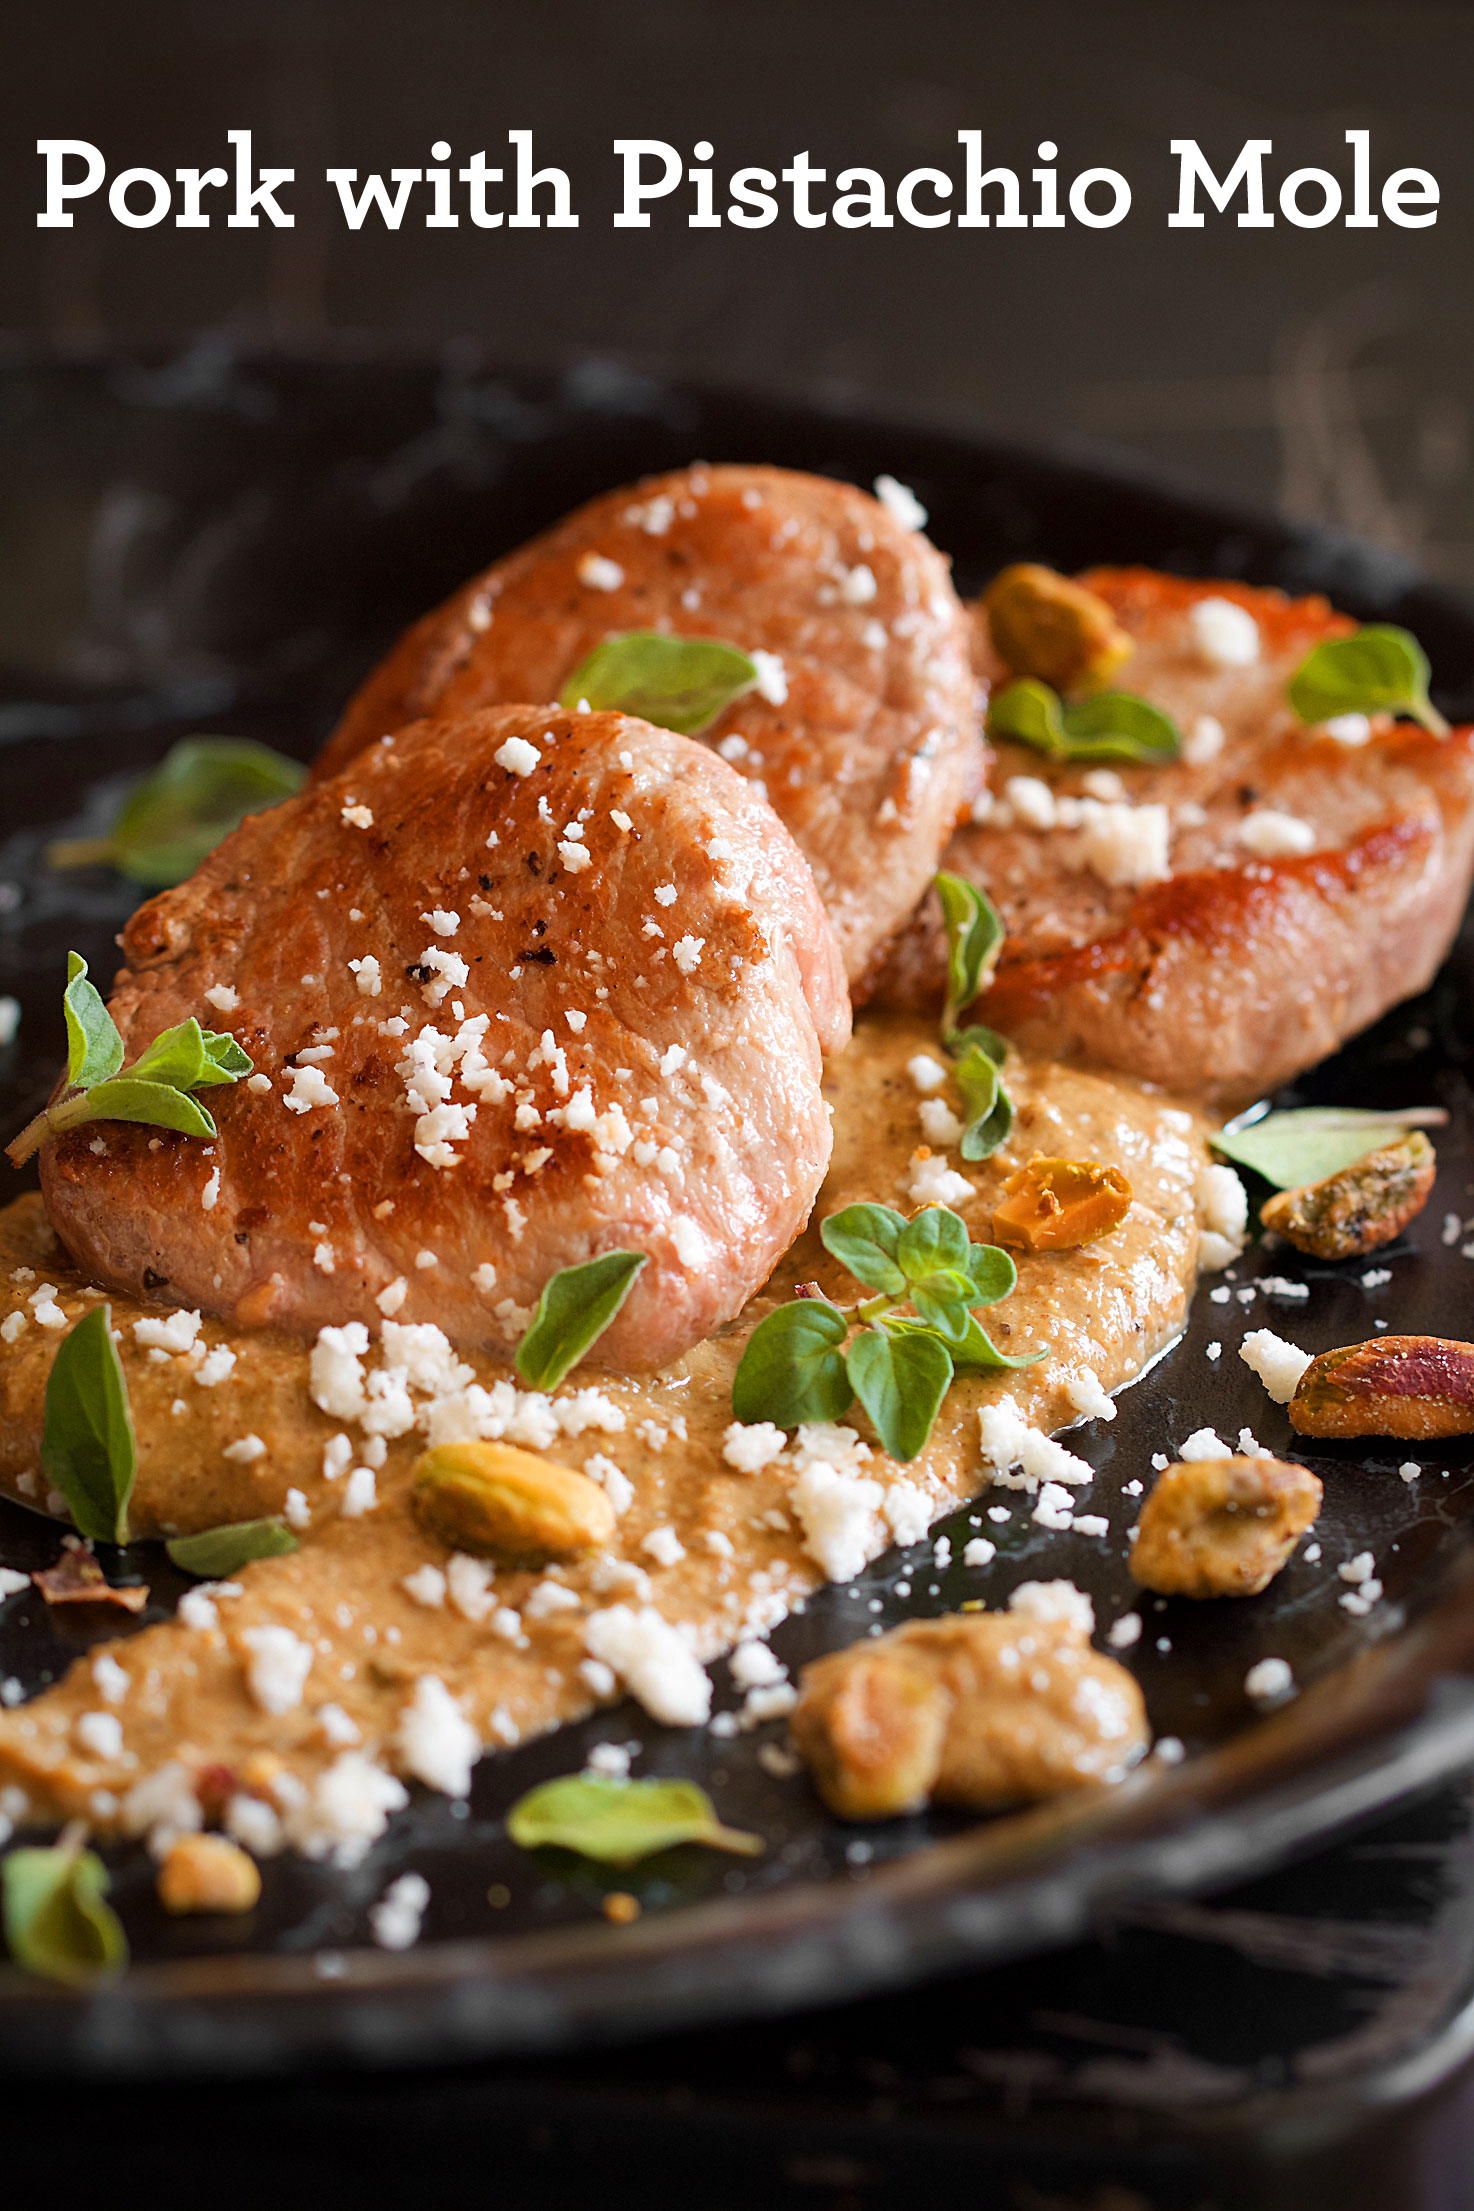 Pan-Seared Pork Medallions with Pistachio Mole